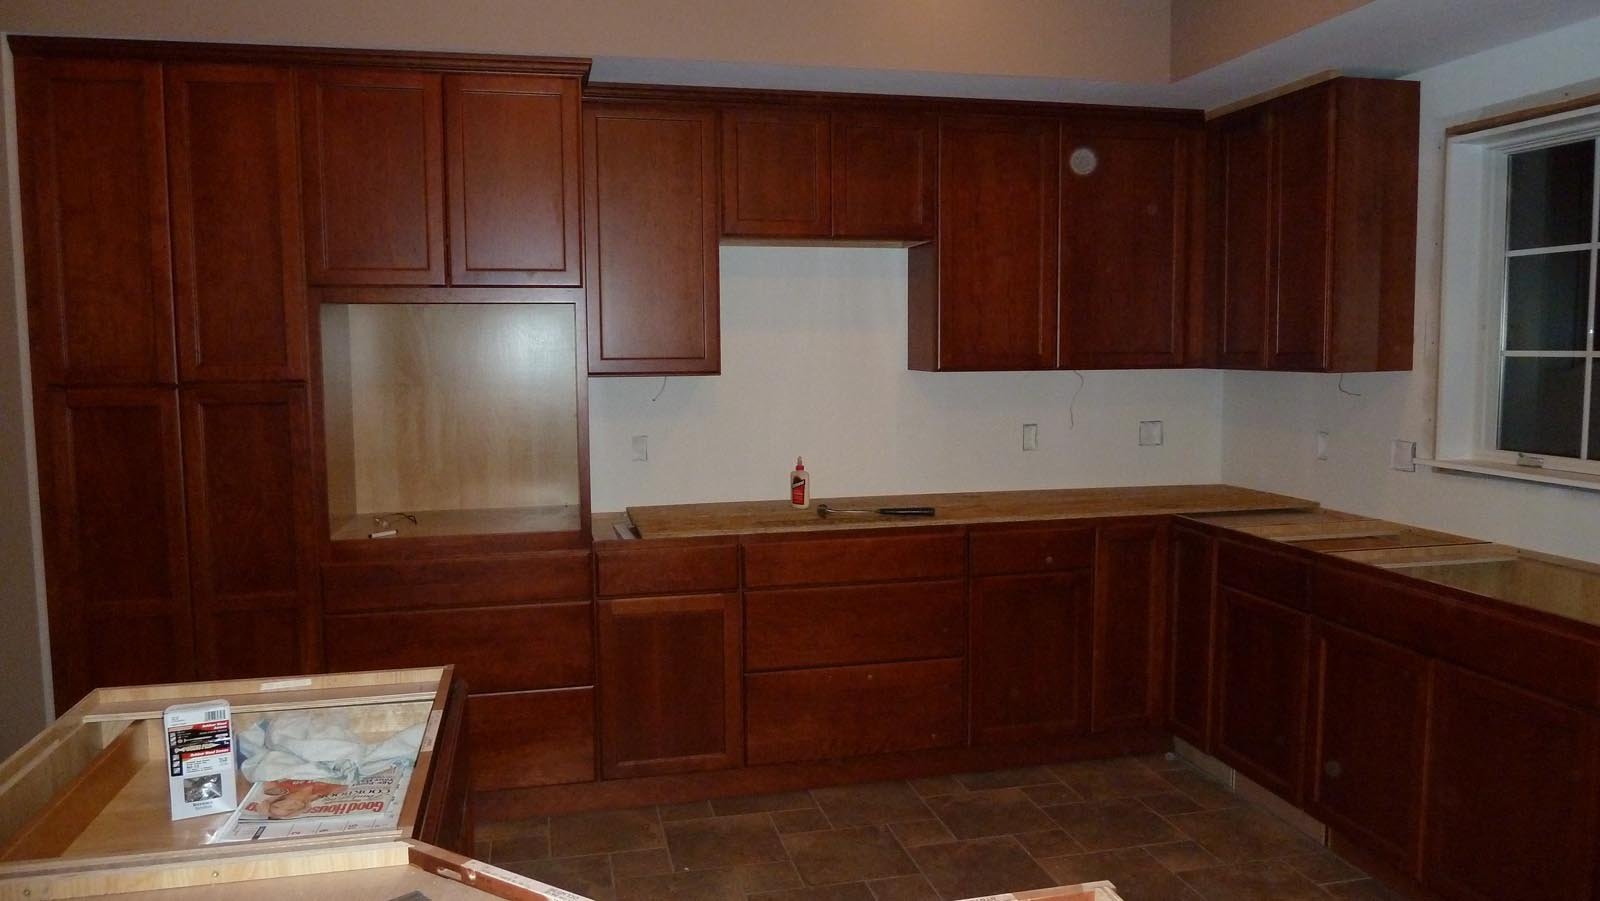 Kitchen Cabinets Installed Tequila Line Paint And Much